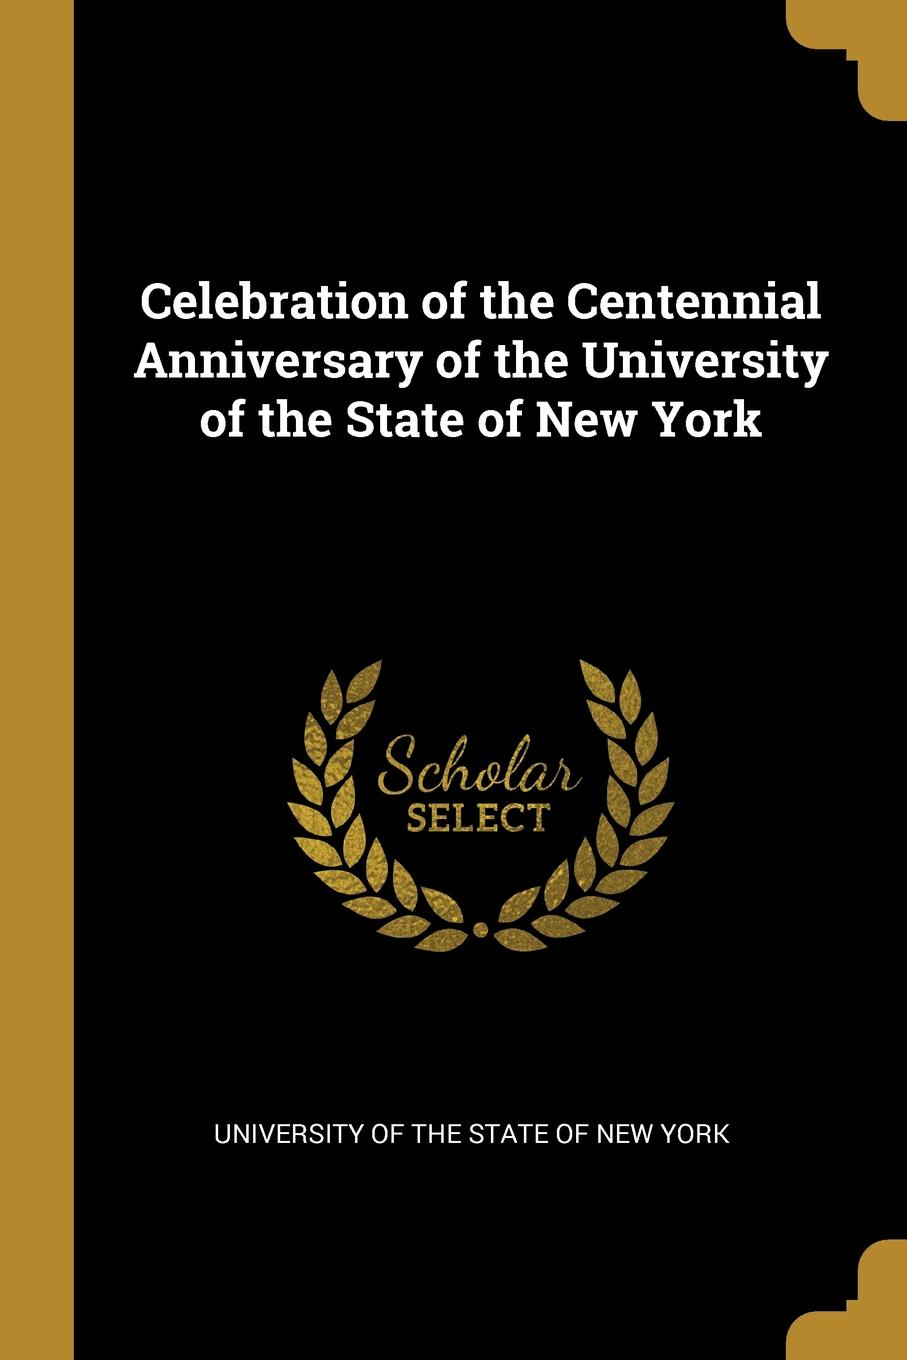 University of the State of New York. Celebration of the Centennial Anniversary of the University of the State of New York